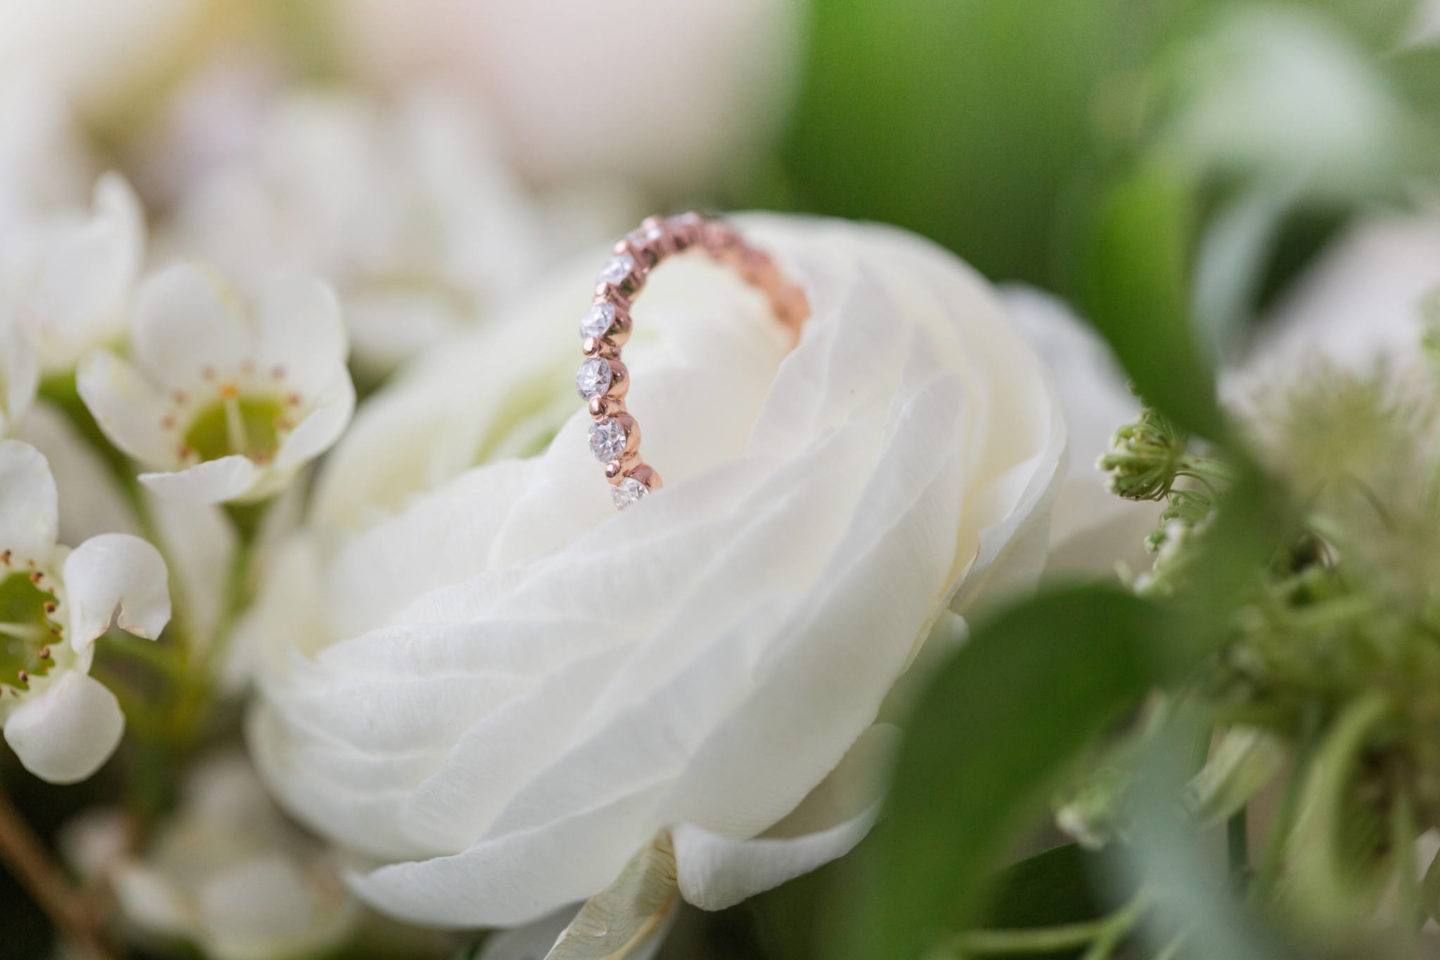 rose gold eternity band in flowers